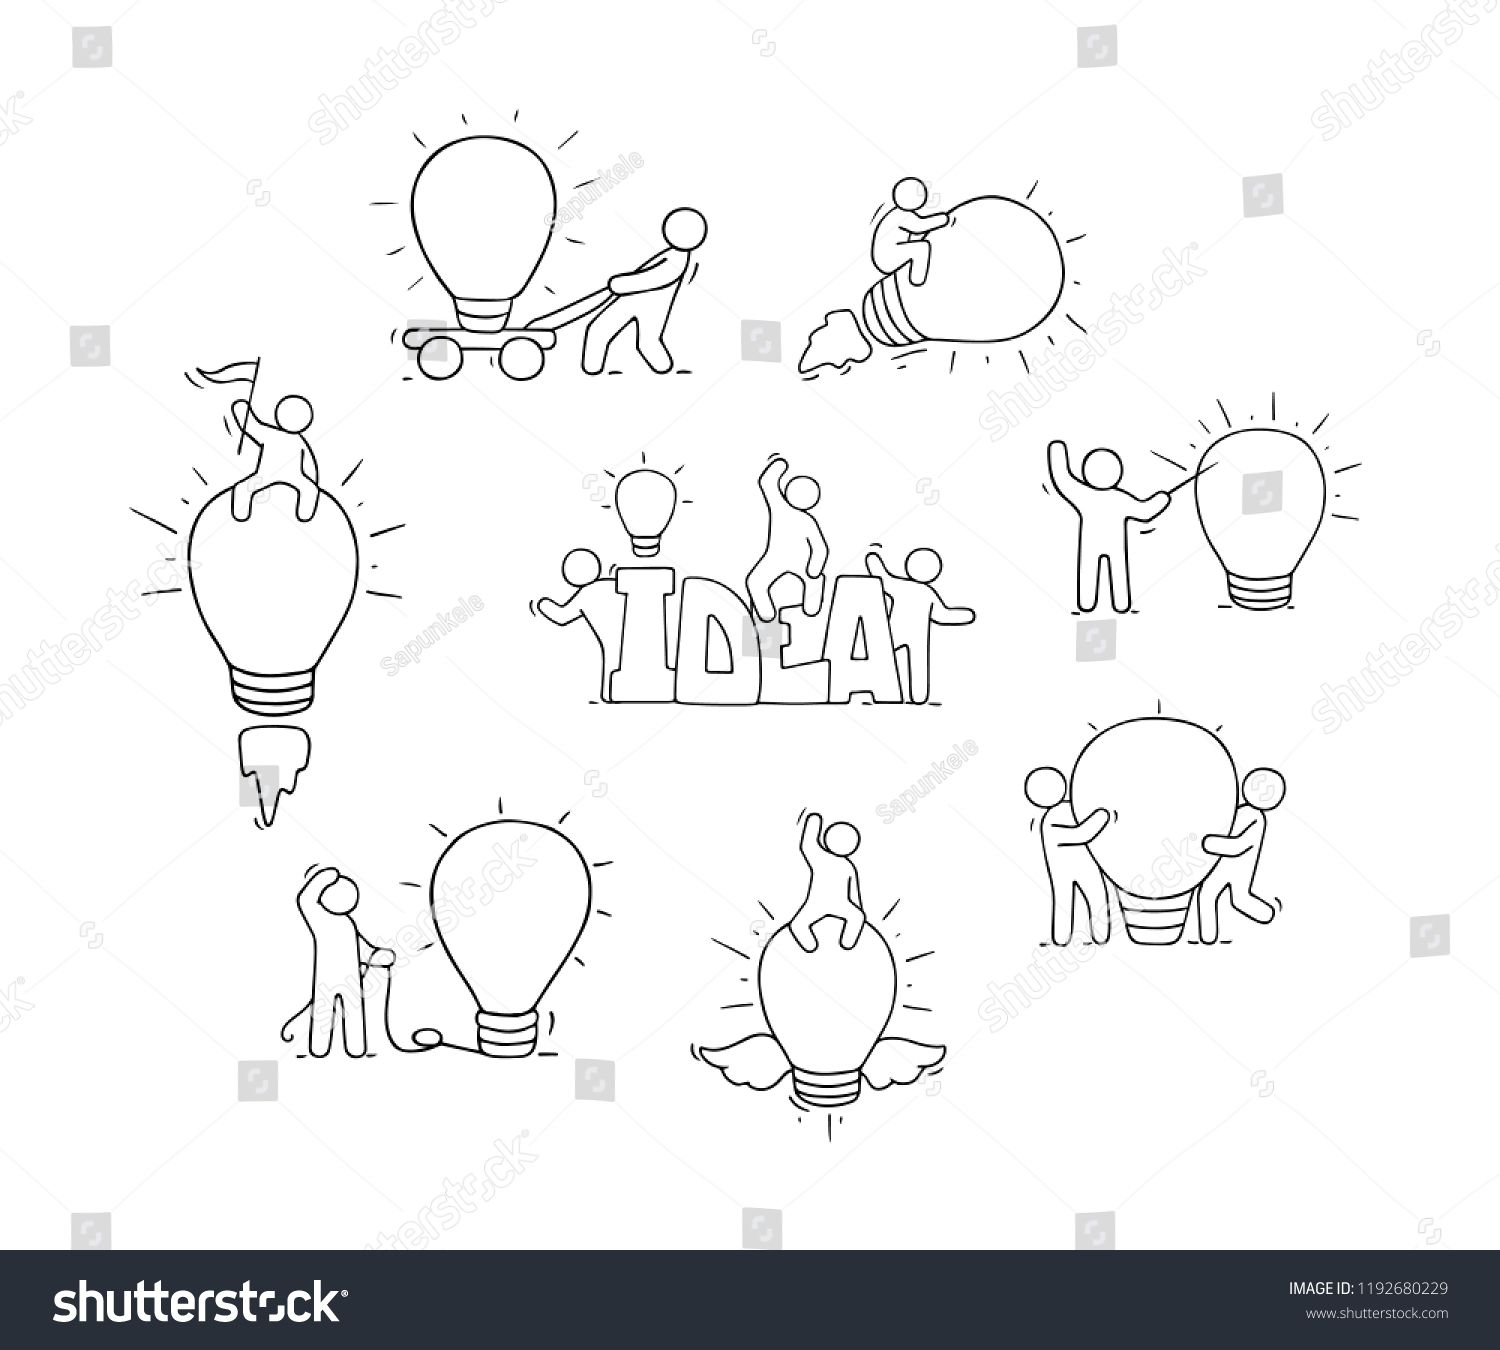 Cartoon Lamp Ideas With Little People Comic Hand Drawn Collection With Workers Vector Isolat How To Draw Hands App Design Inspiration Little People